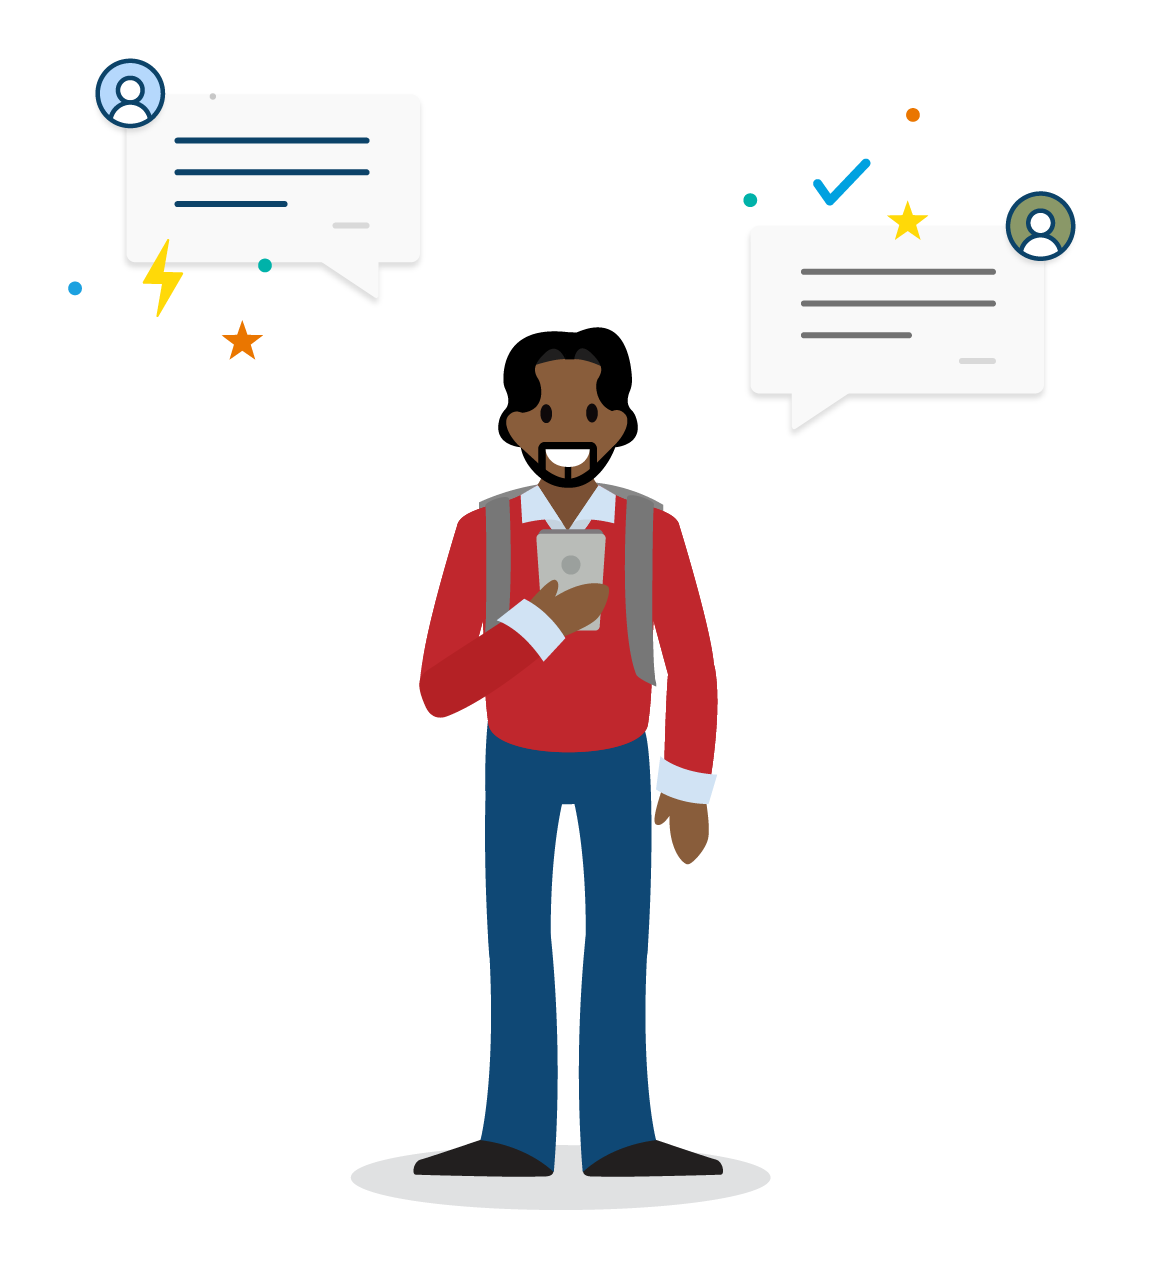 A student on a smartphone messaging with a Salesforce chatbot